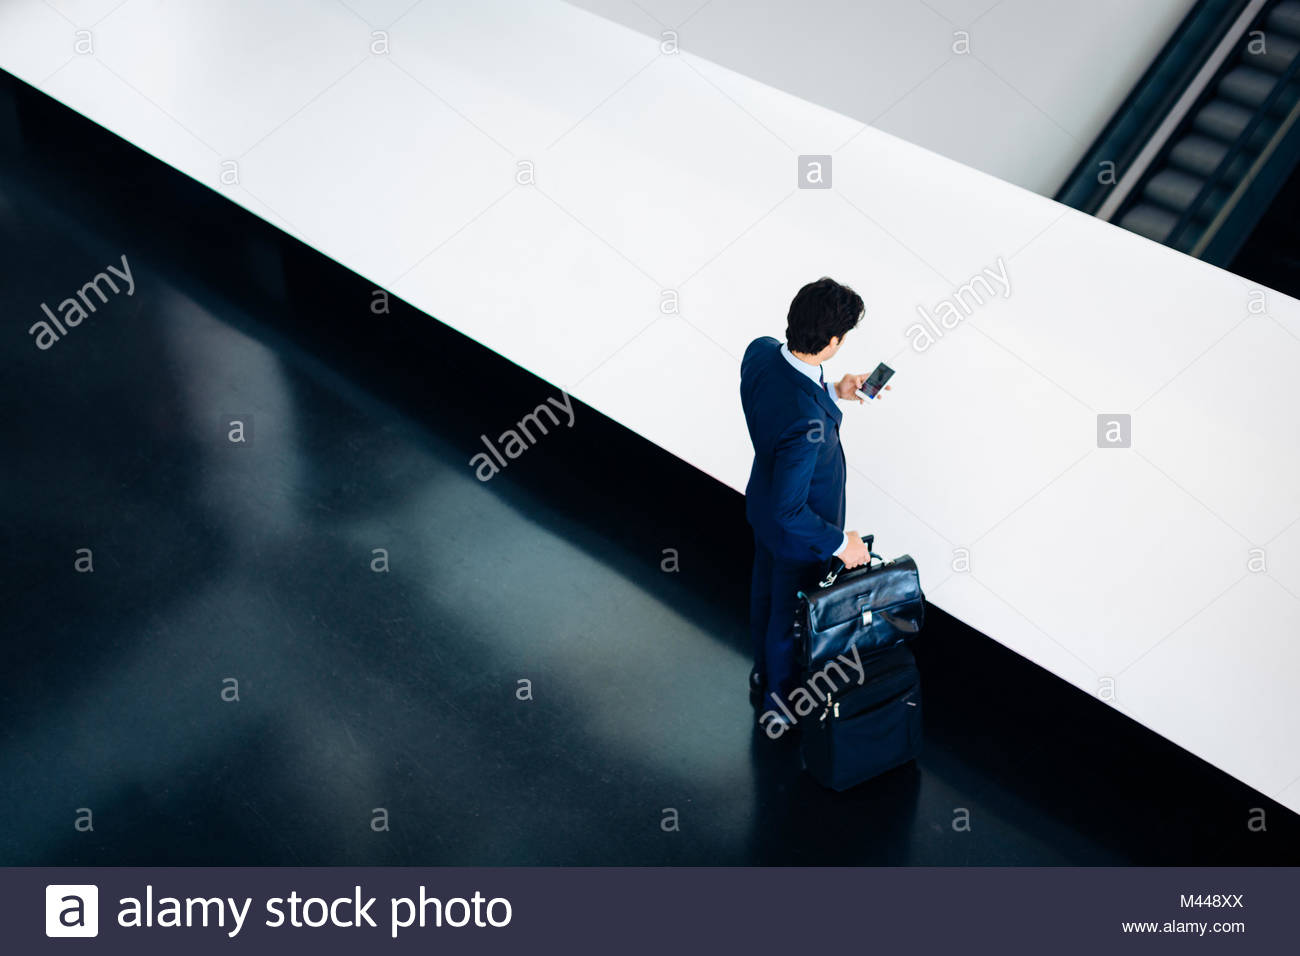 Businessman with wheeled luggage in hotel building - Stock Image